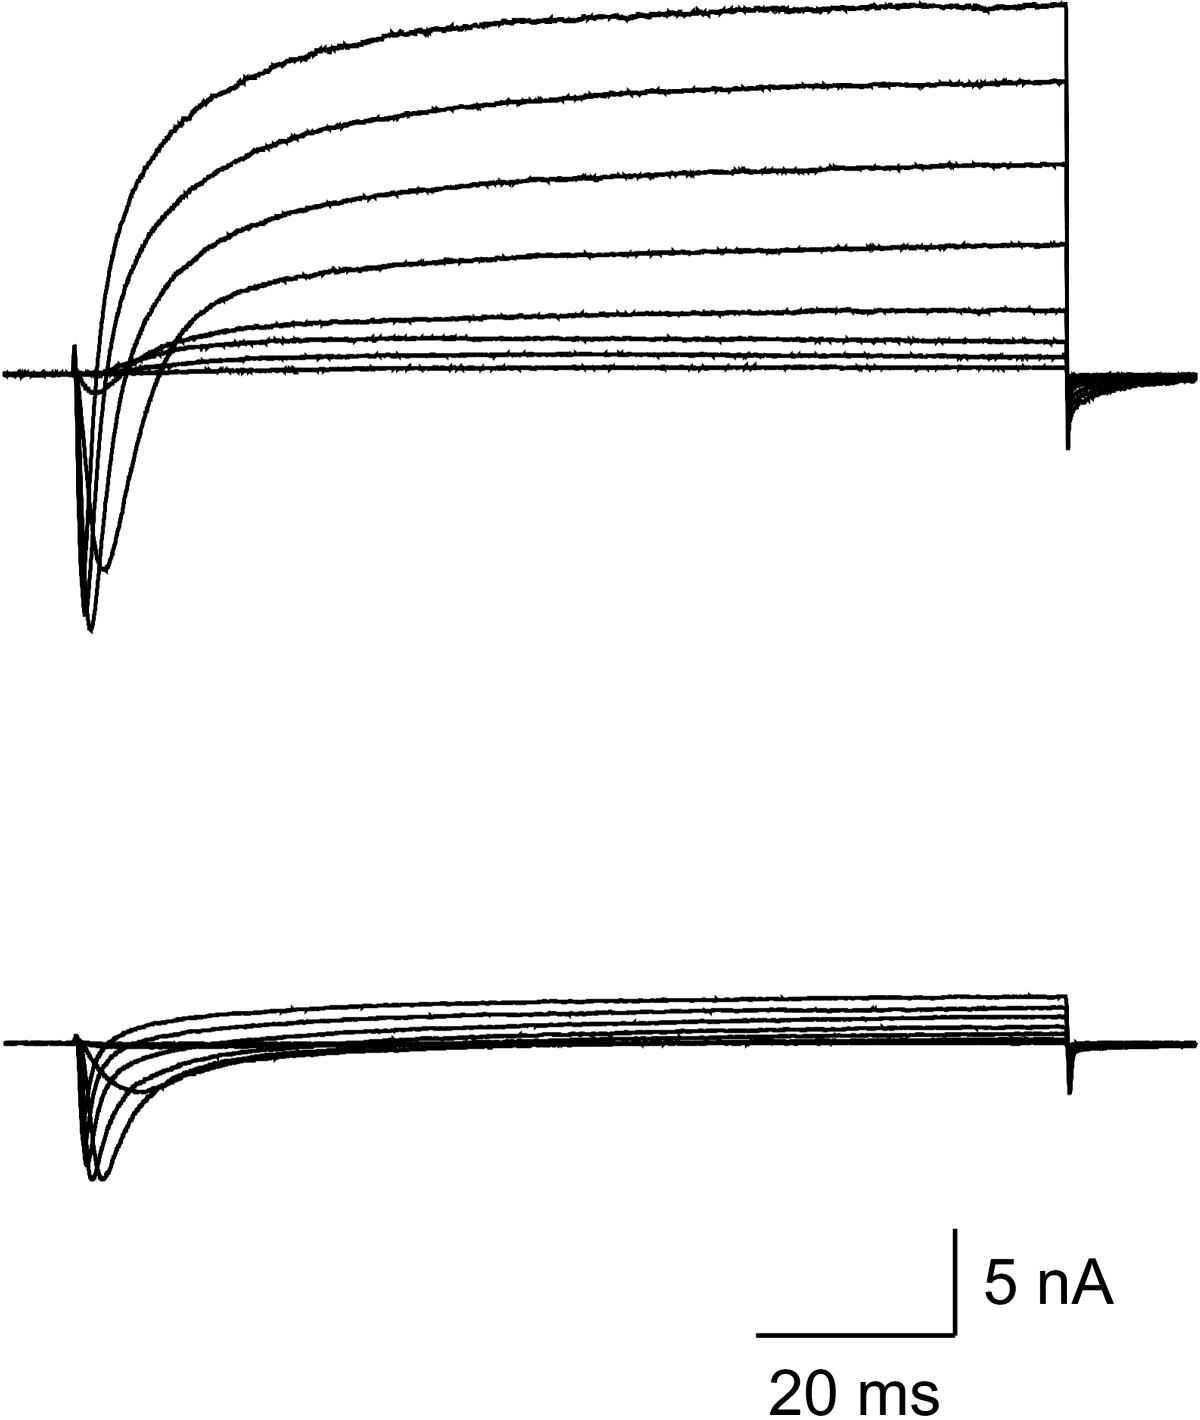 http://static-content.springer.com/image/art%3A10.1186%2F1744-8069-3-12/MediaObjects/12990_2007_Article_86_Fig3_HTML.jpg